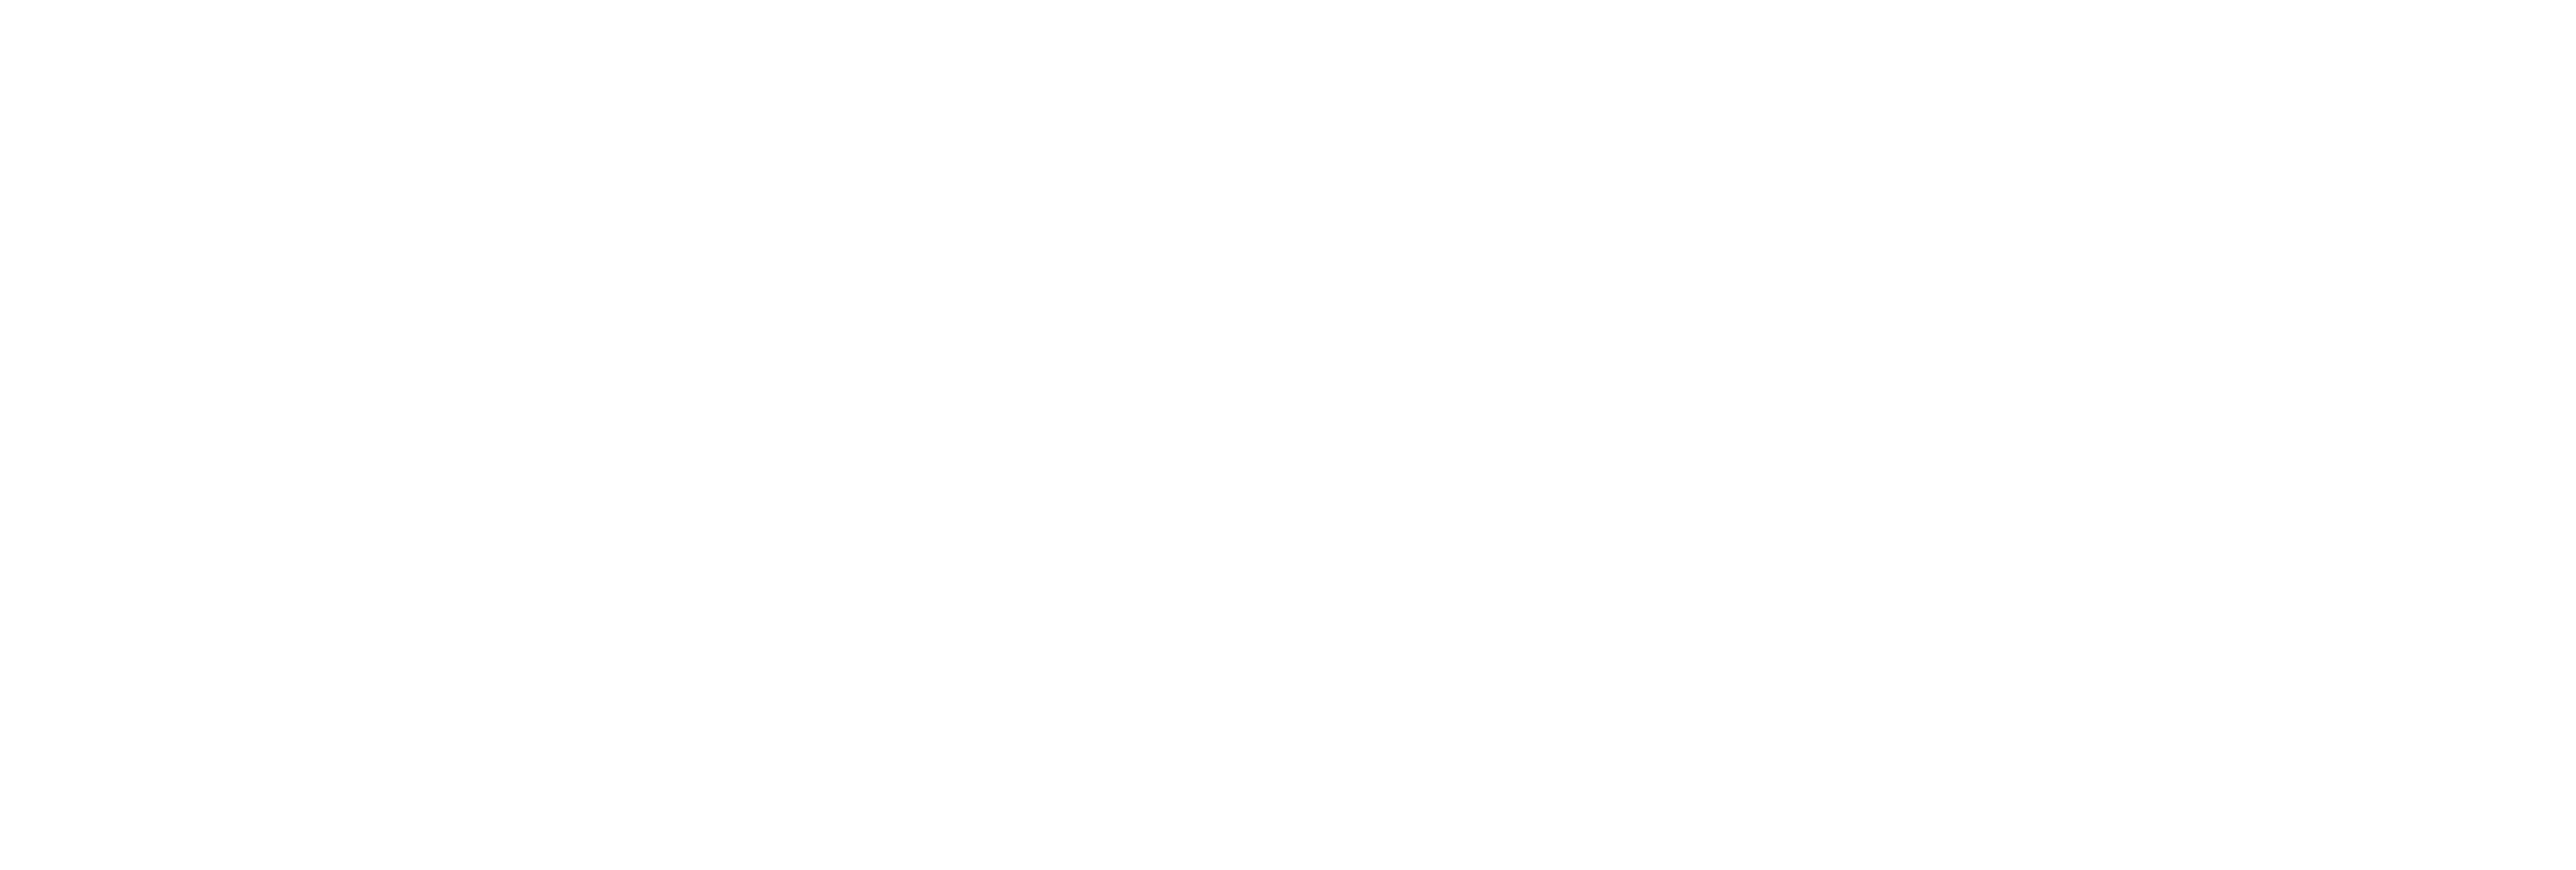 Stand Student Ministries logo.